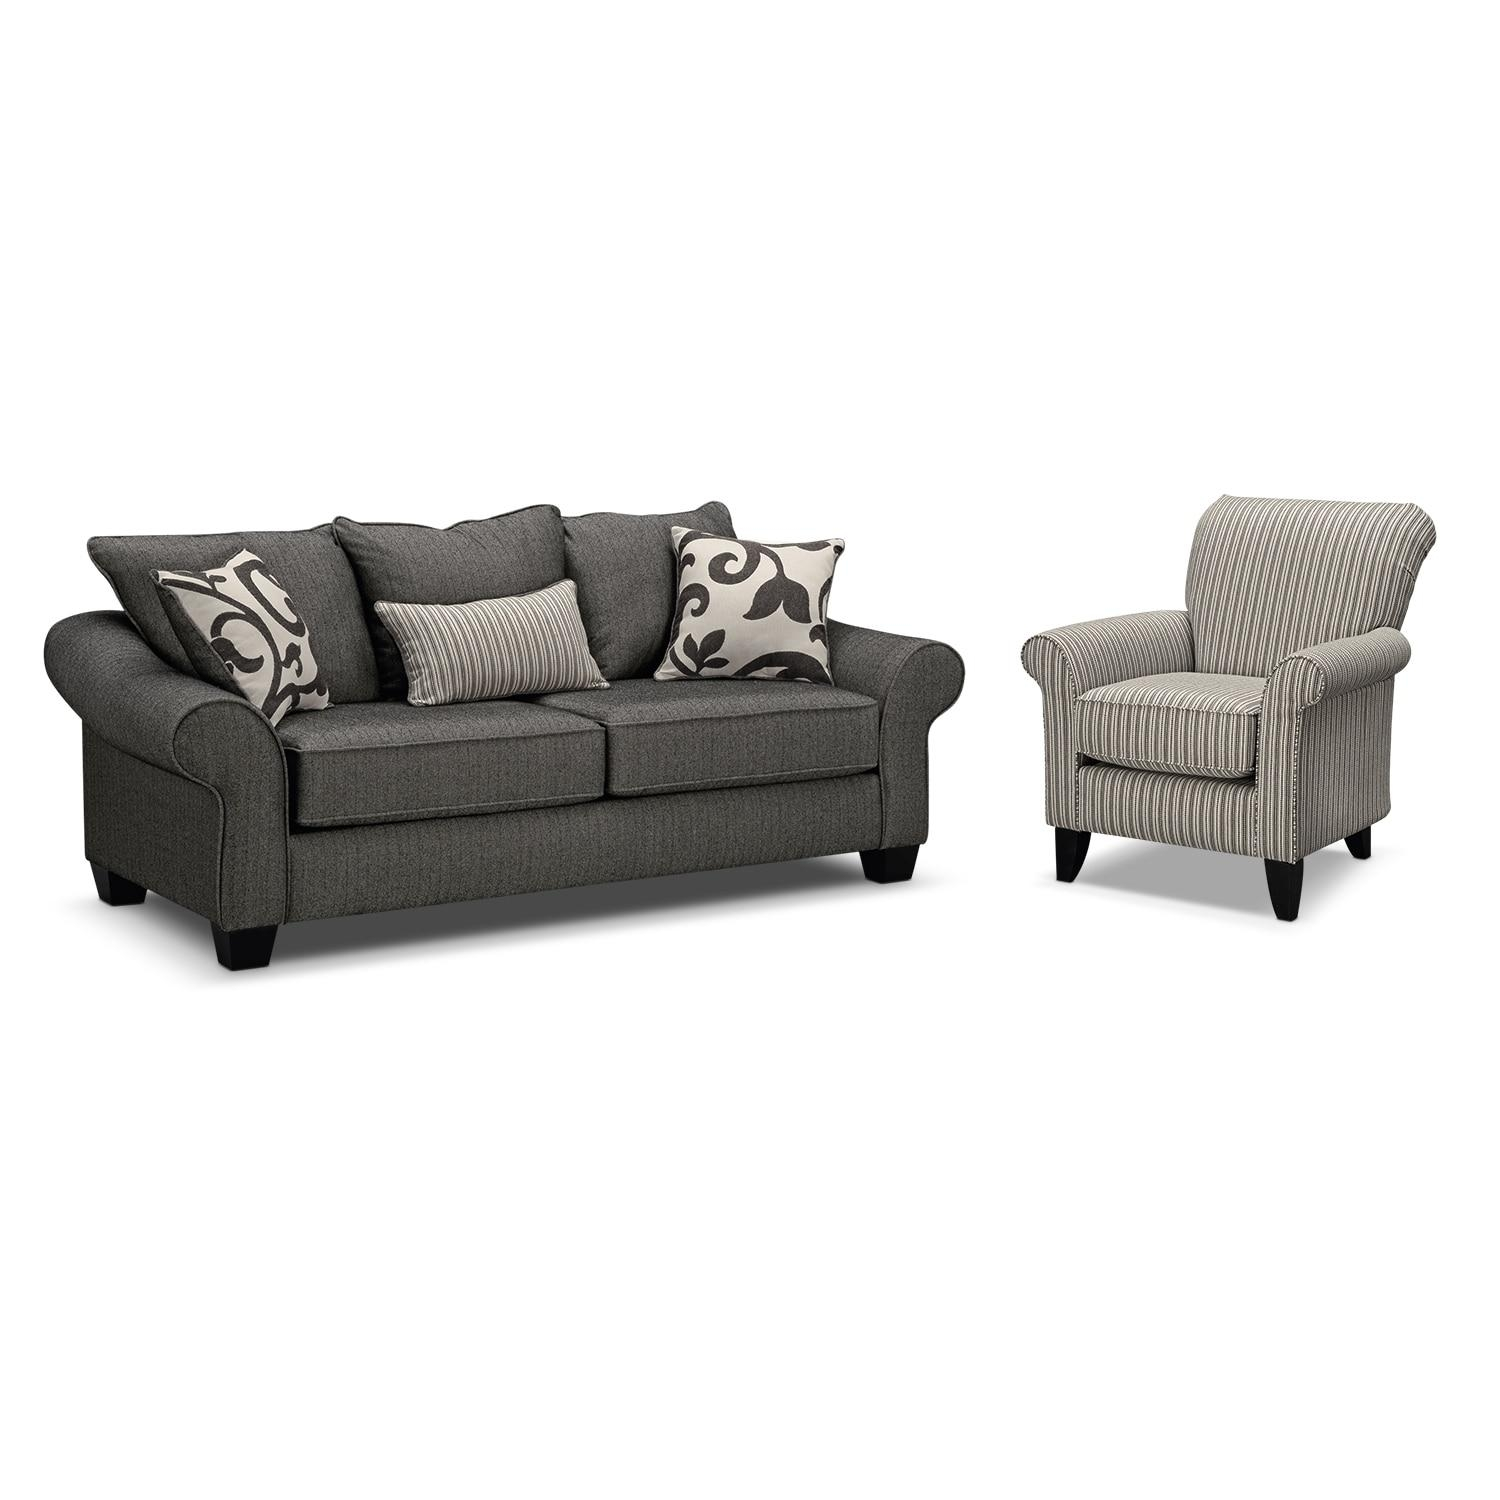 accent sofa bergamo extended sectional leather modern 20 photos and chair set ideas